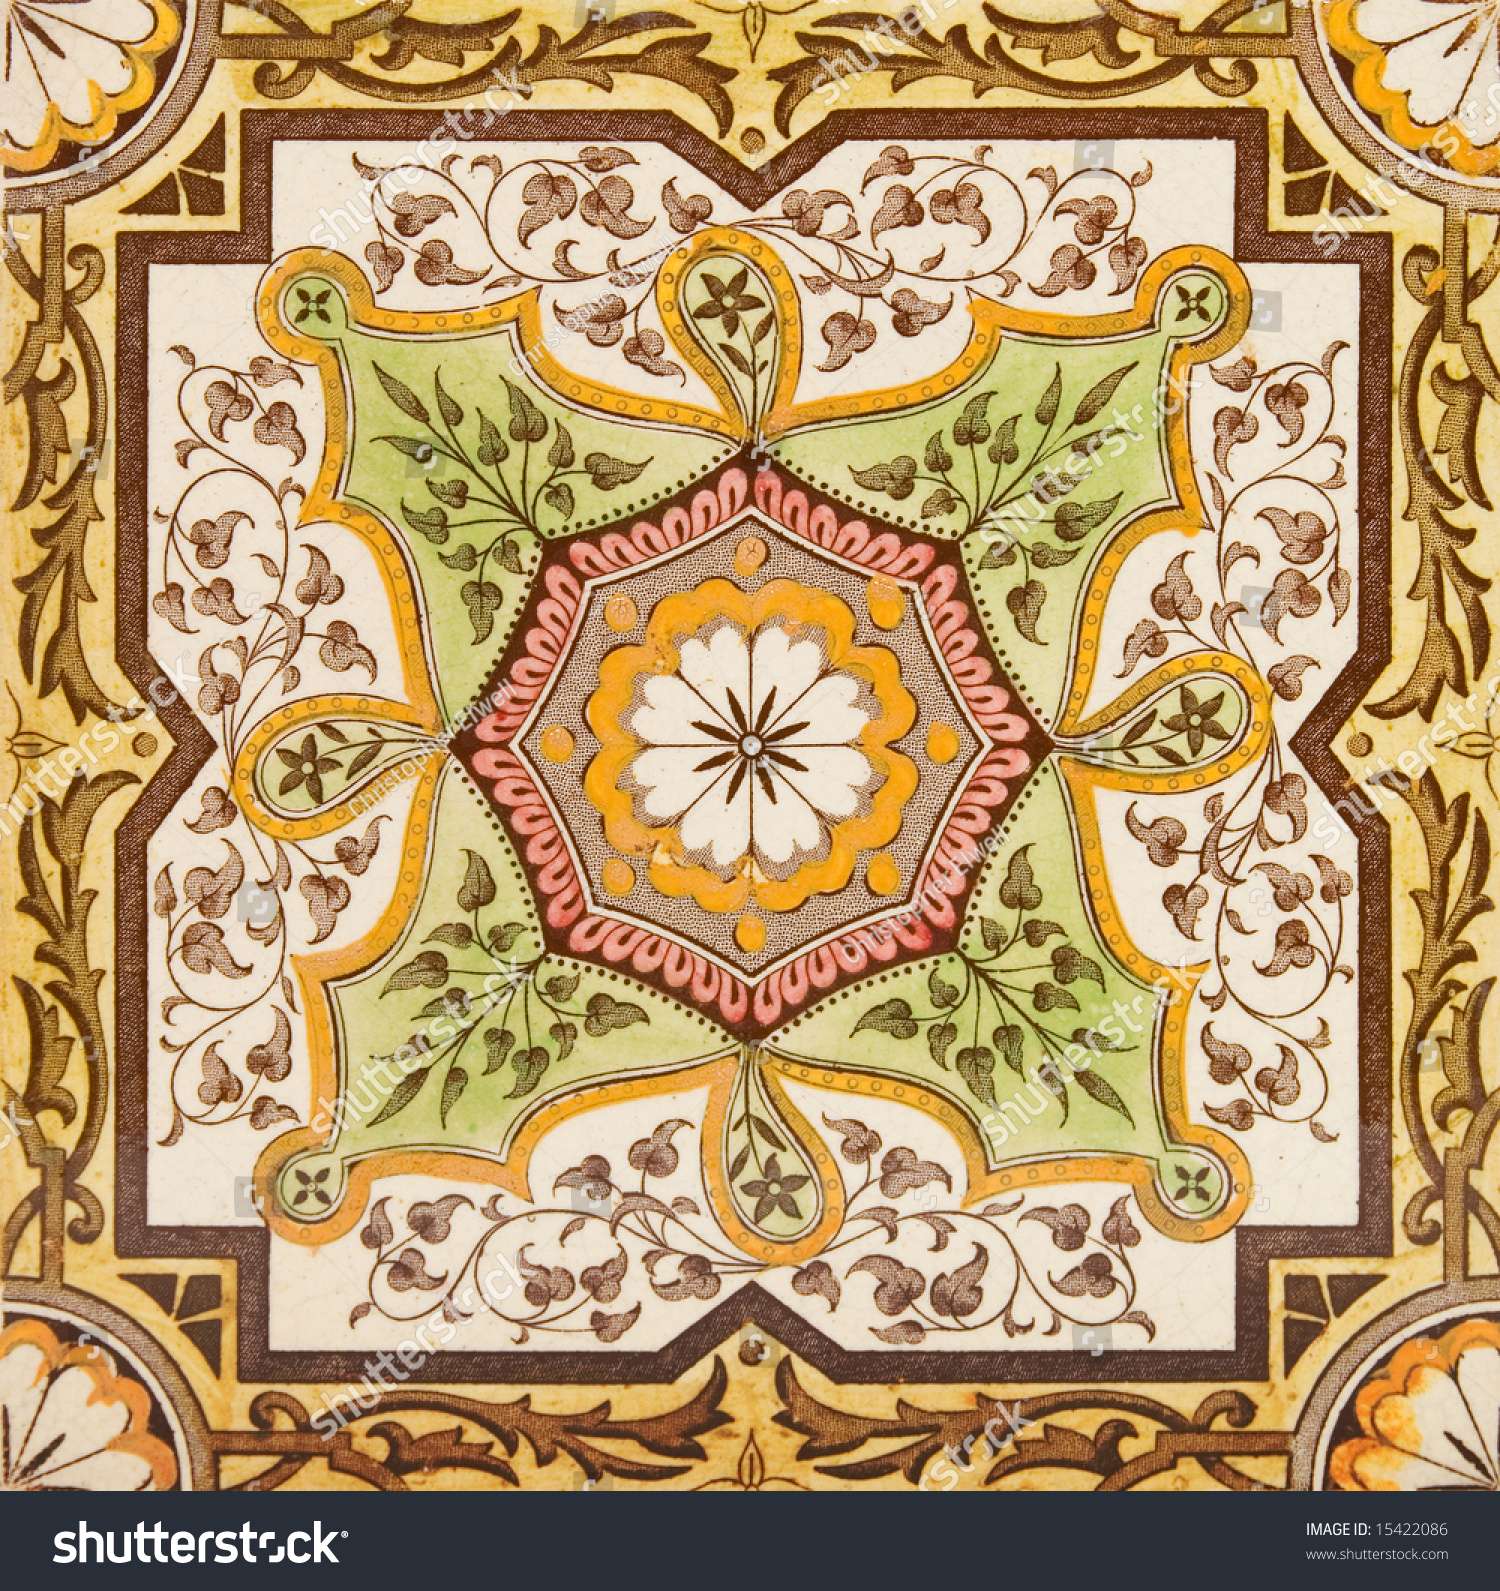 Decorative wall tile late victorian period stock photo 15422086 decorative wall tile from the late victorian period c1880 aesthetic style amipublicfo Gallery